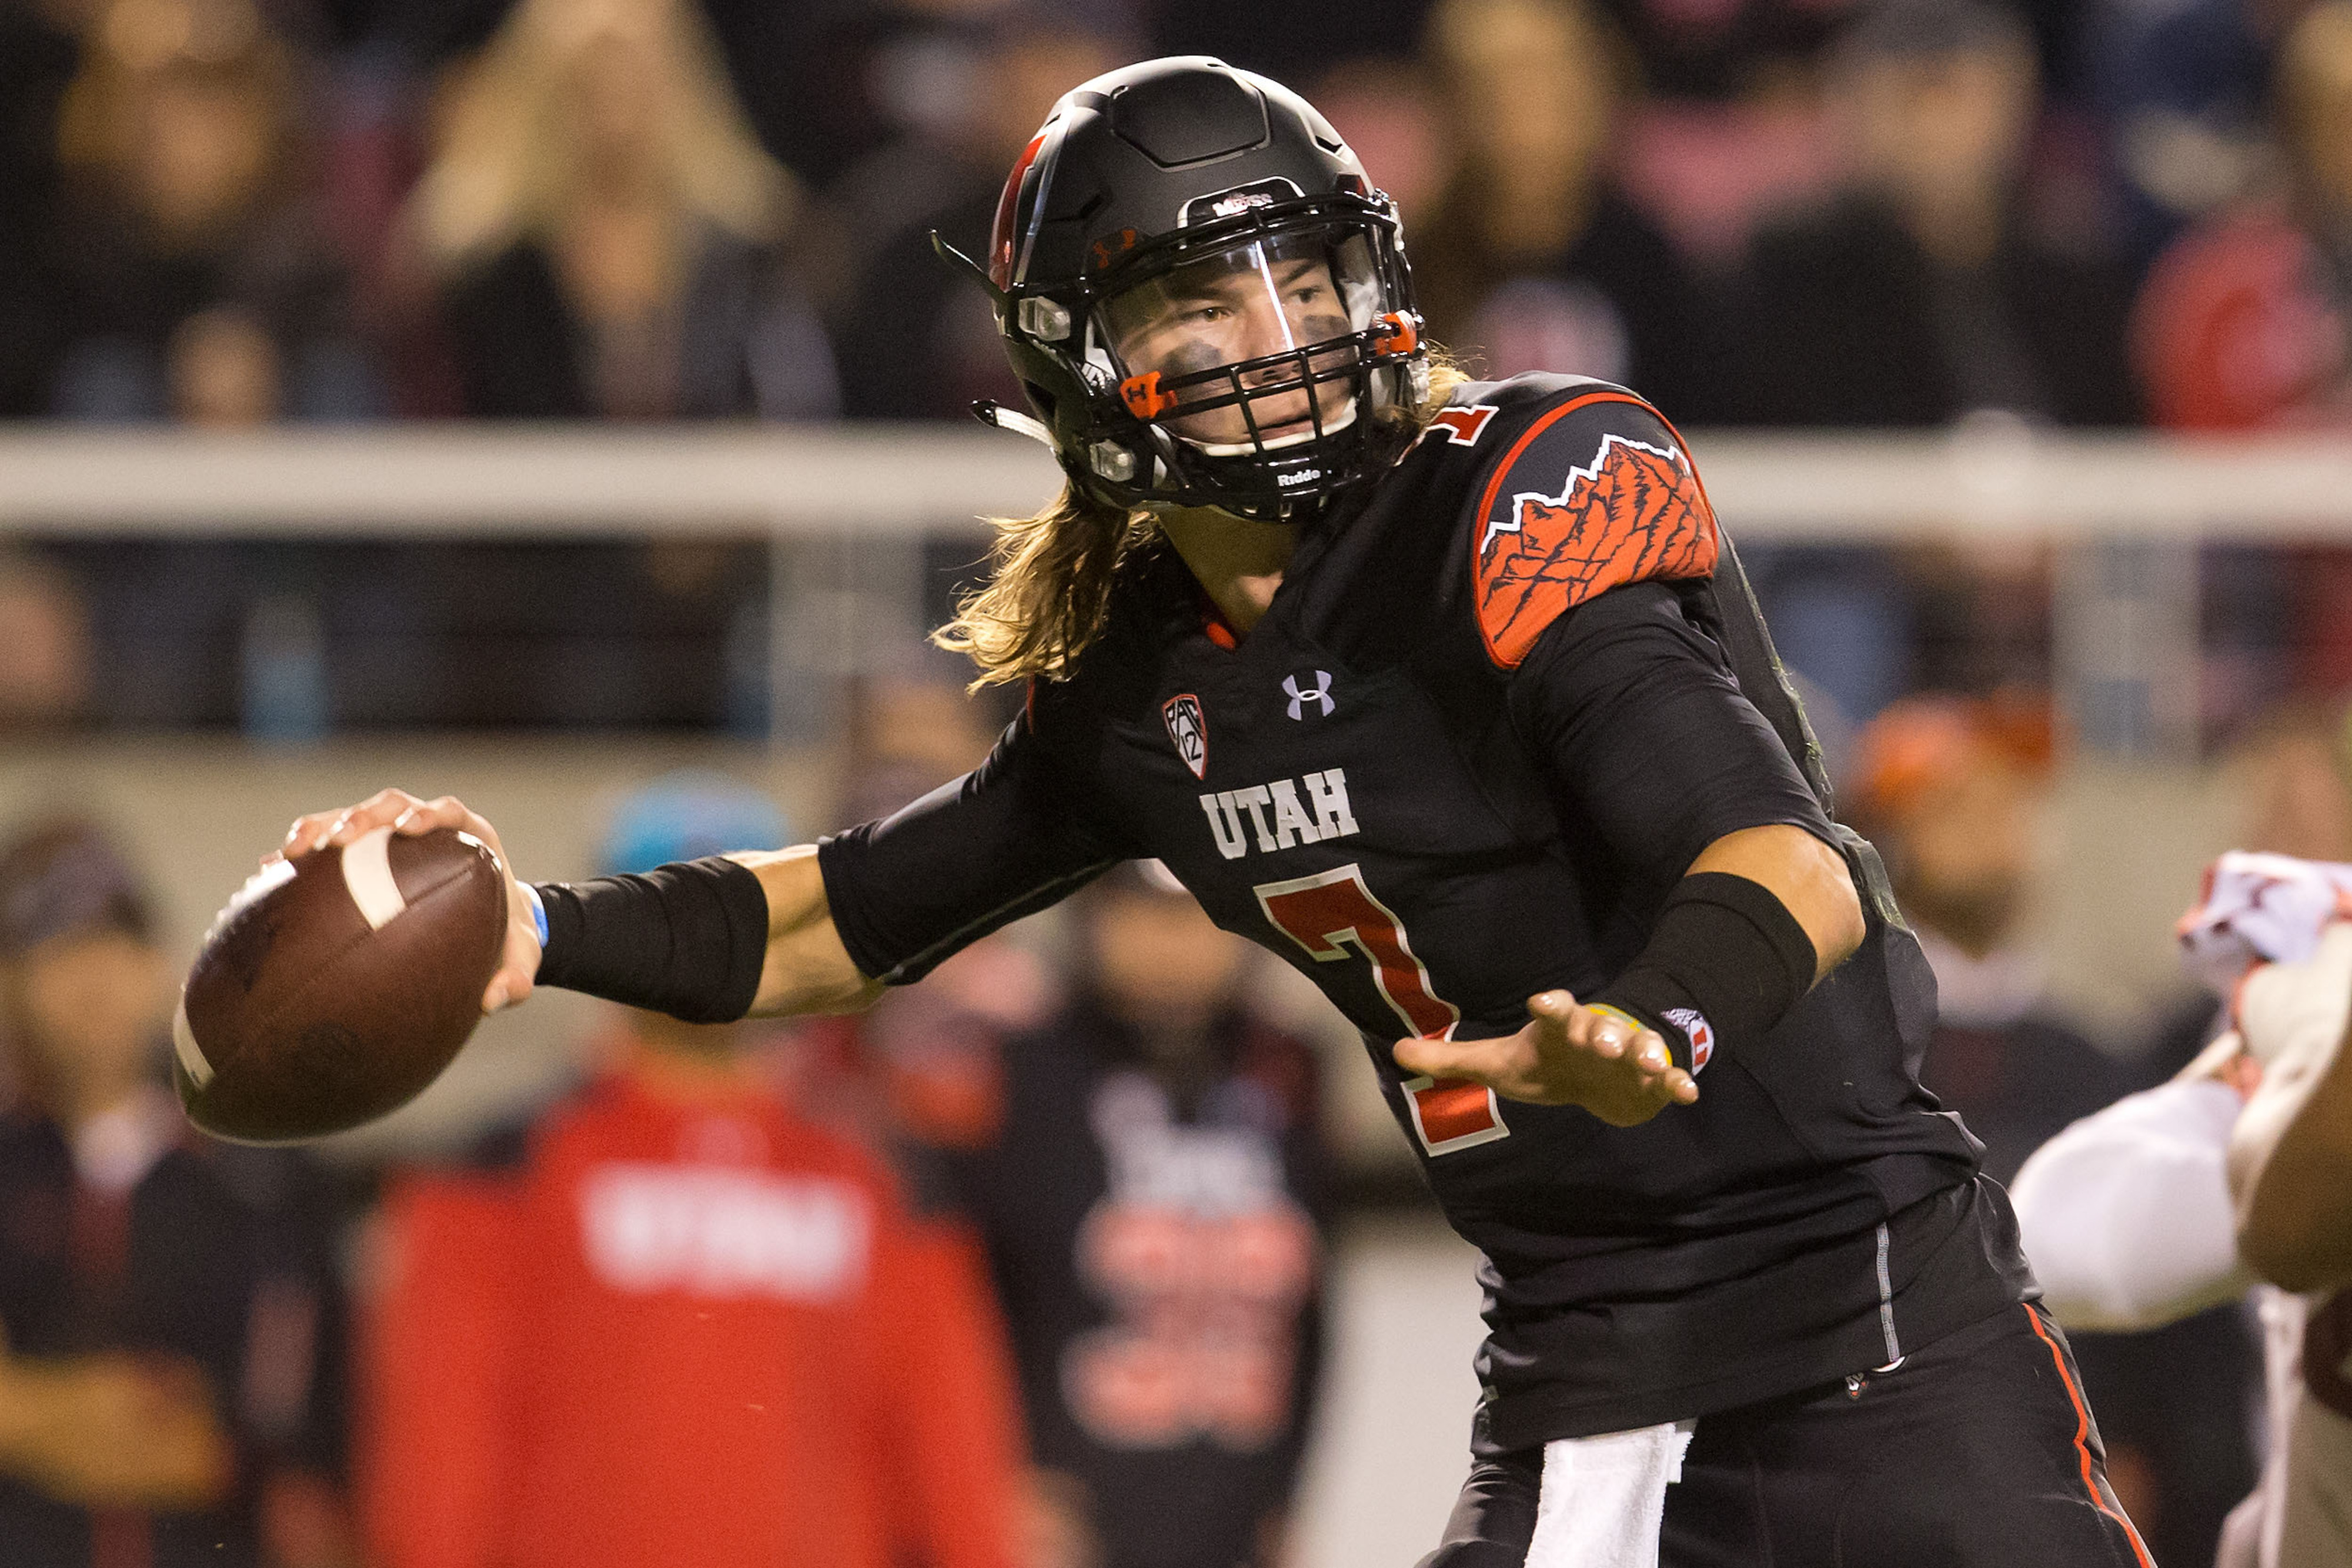 Utah junior quarterback Travis Wilson led his No. 19-ranked Utes on a dramatic, game-winning drive with just over two minutes to play to beat No. 20 USC.